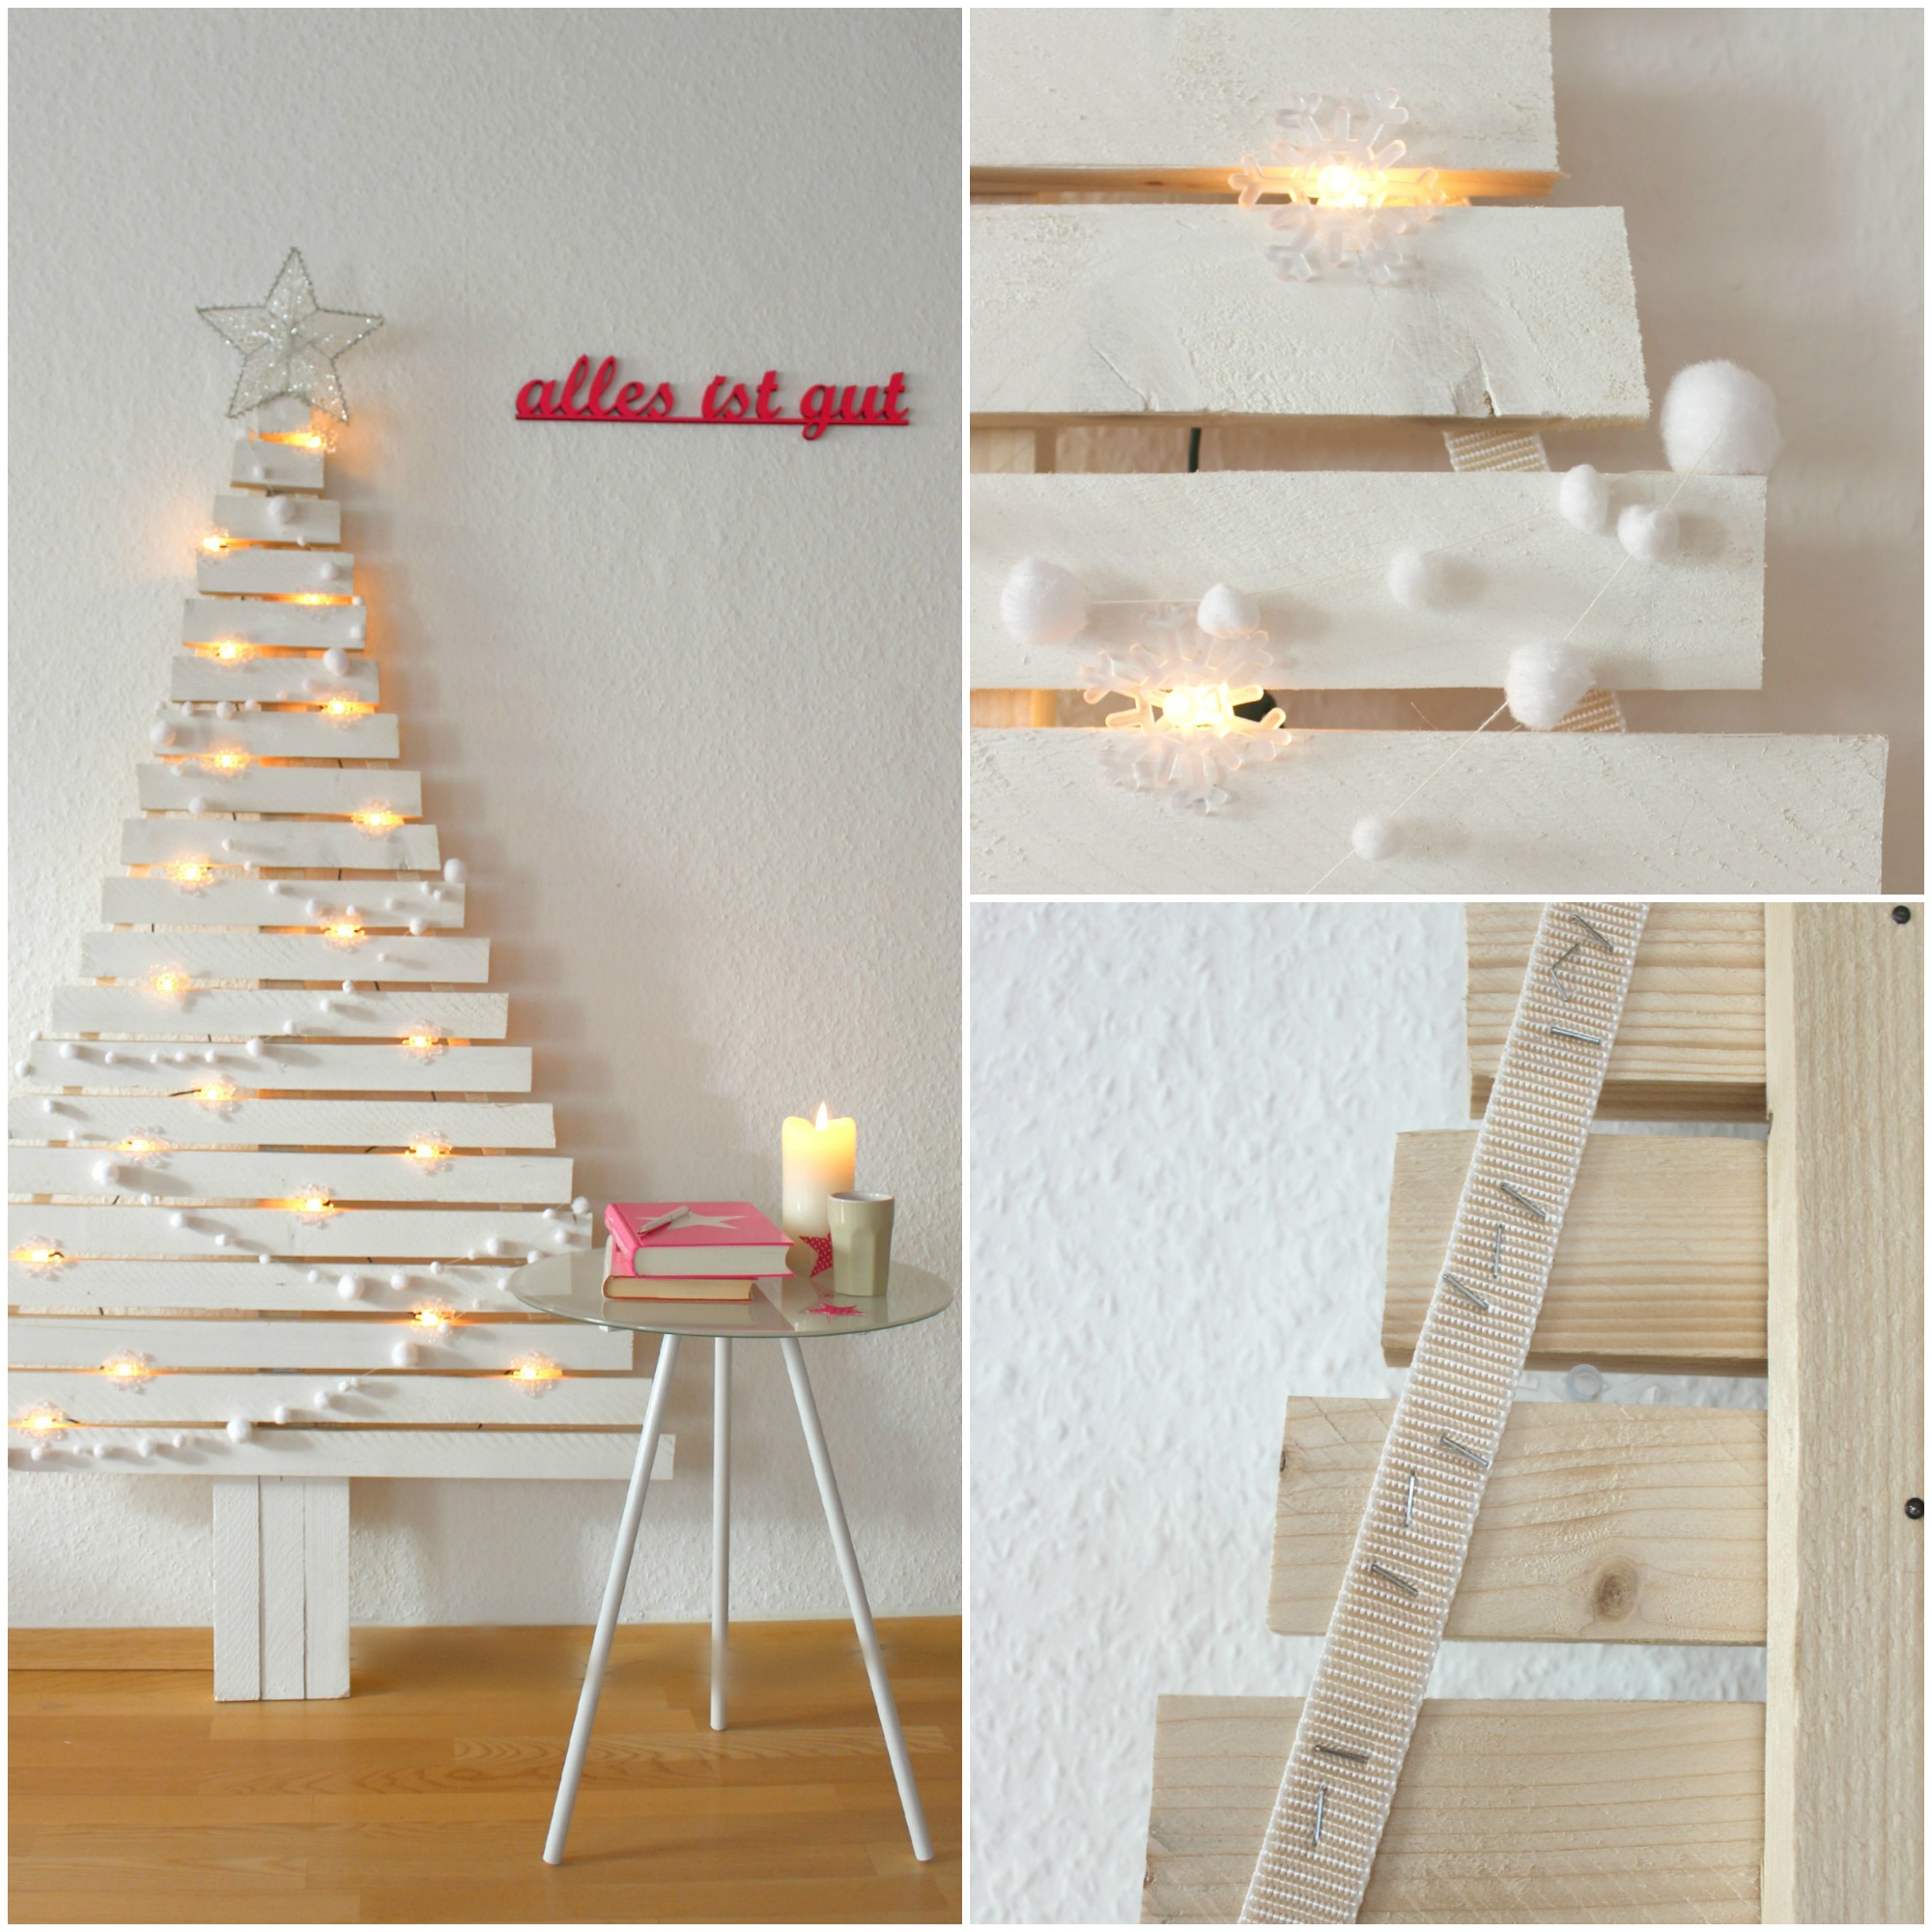 weihnachtsbaum aus holzlatten diy weihnachtsbaum aus holzlatten muttis n hk stchen. Black Bedroom Furniture Sets. Home Design Ideas